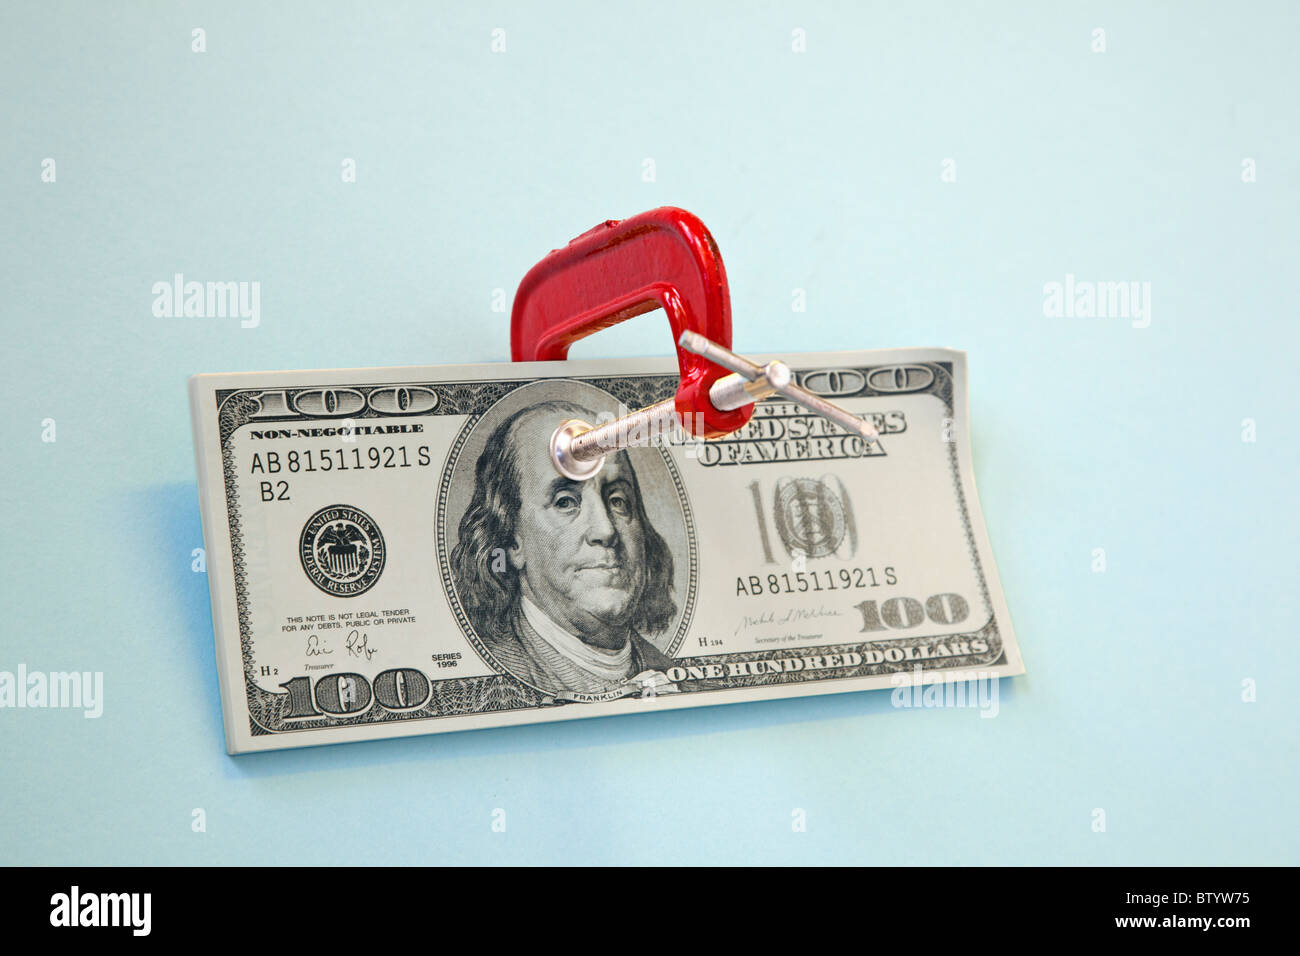 100 dollar bill with clamp on it - Stock Image